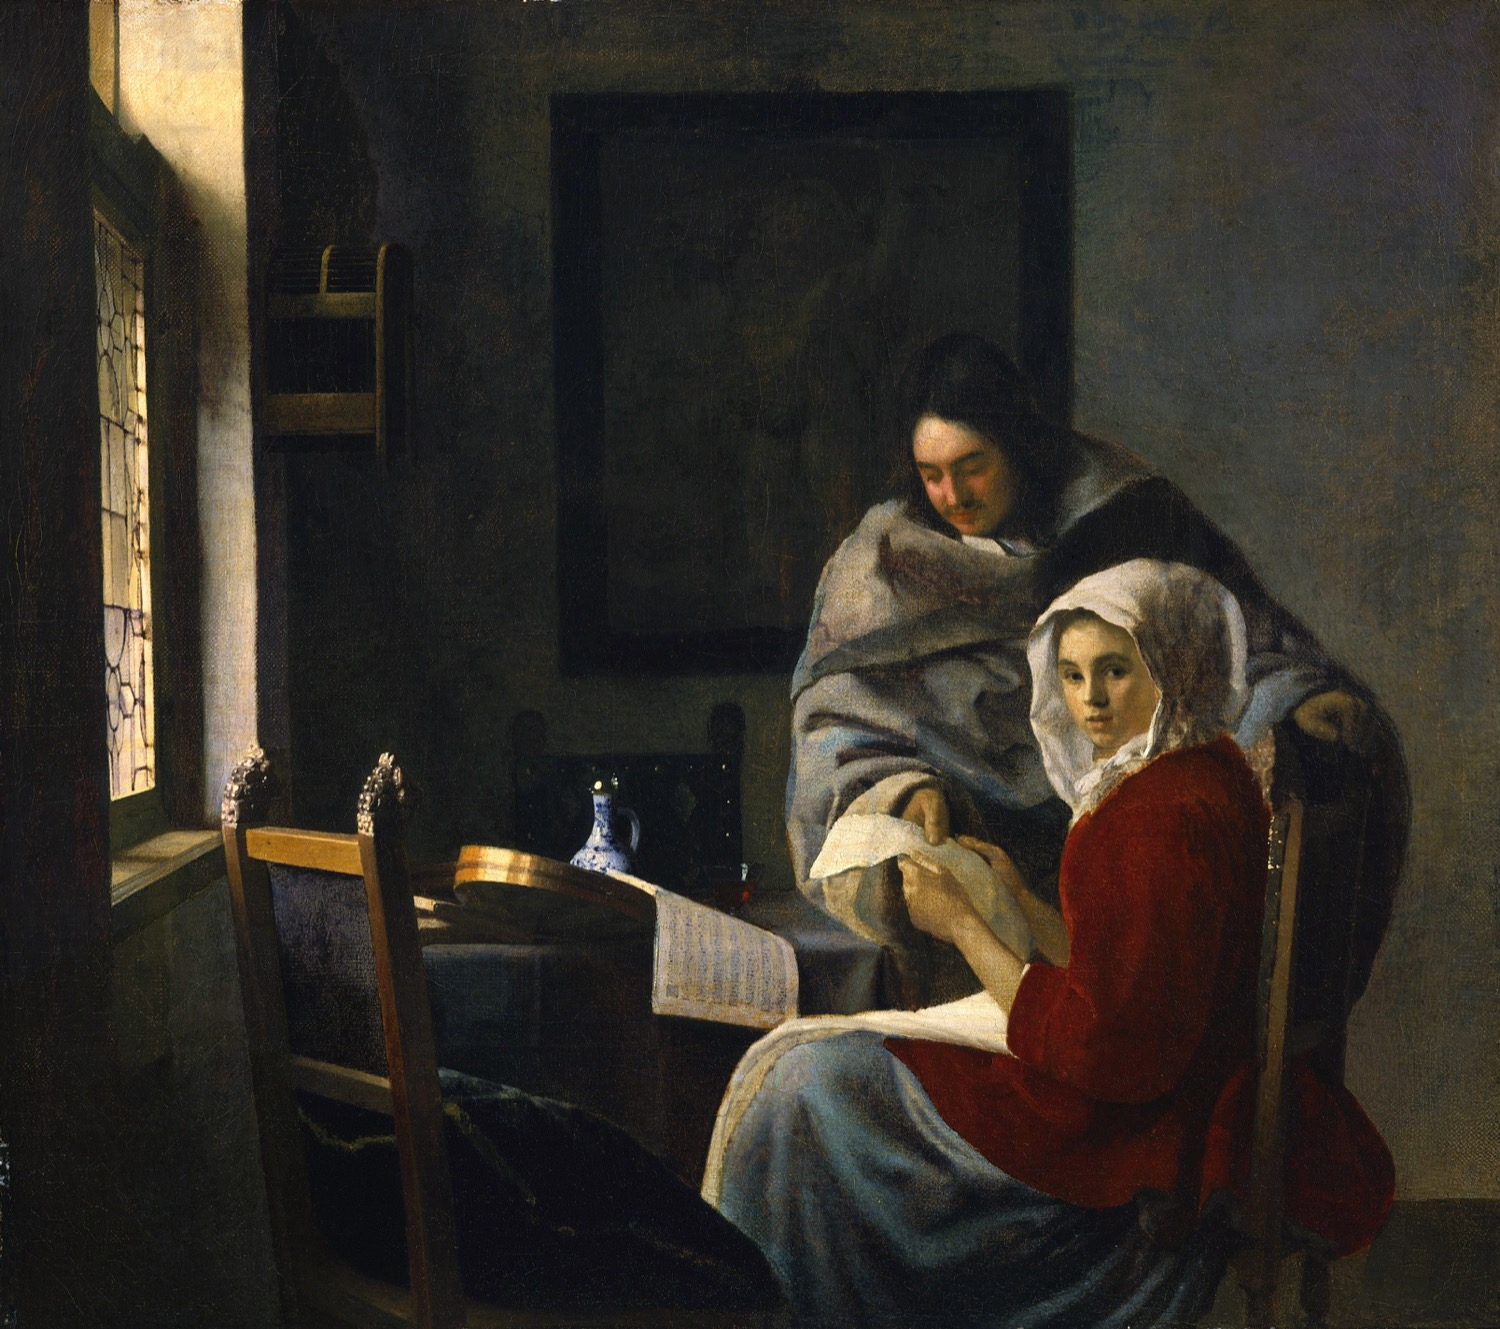 Looking at Vermeer's Paintings in Manhattan